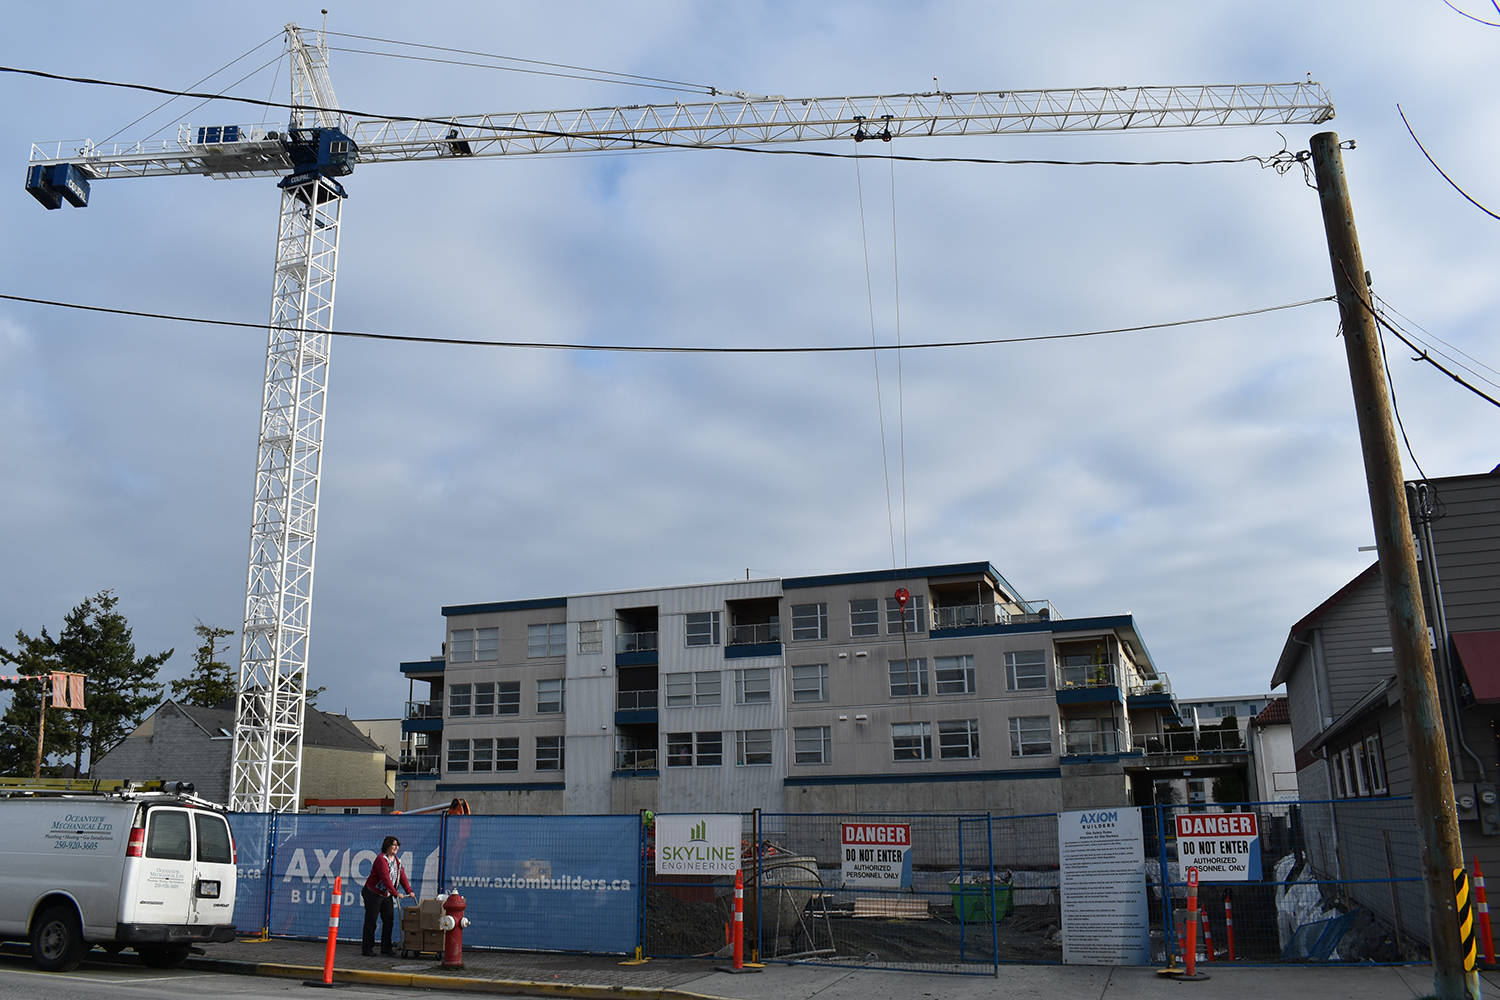 Housing starts, value of building permits down across Greater Victoria